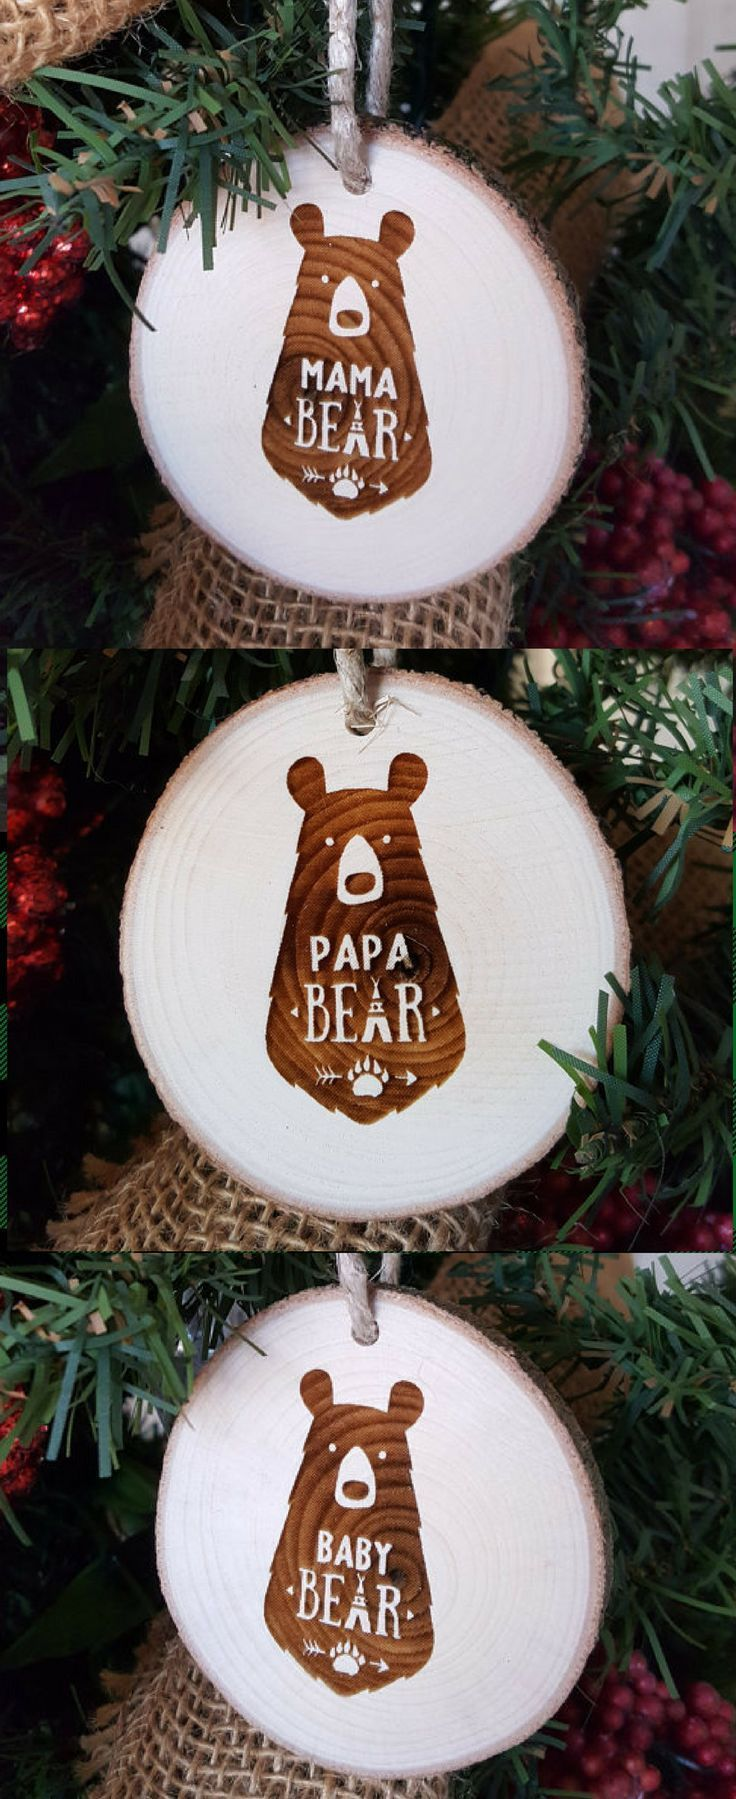 224 best baylorchristmas images on pinterest baylor university mama papa and baby bear ornaments perfect for baylor families christmas roomdiy solutioingenieria Choice Image